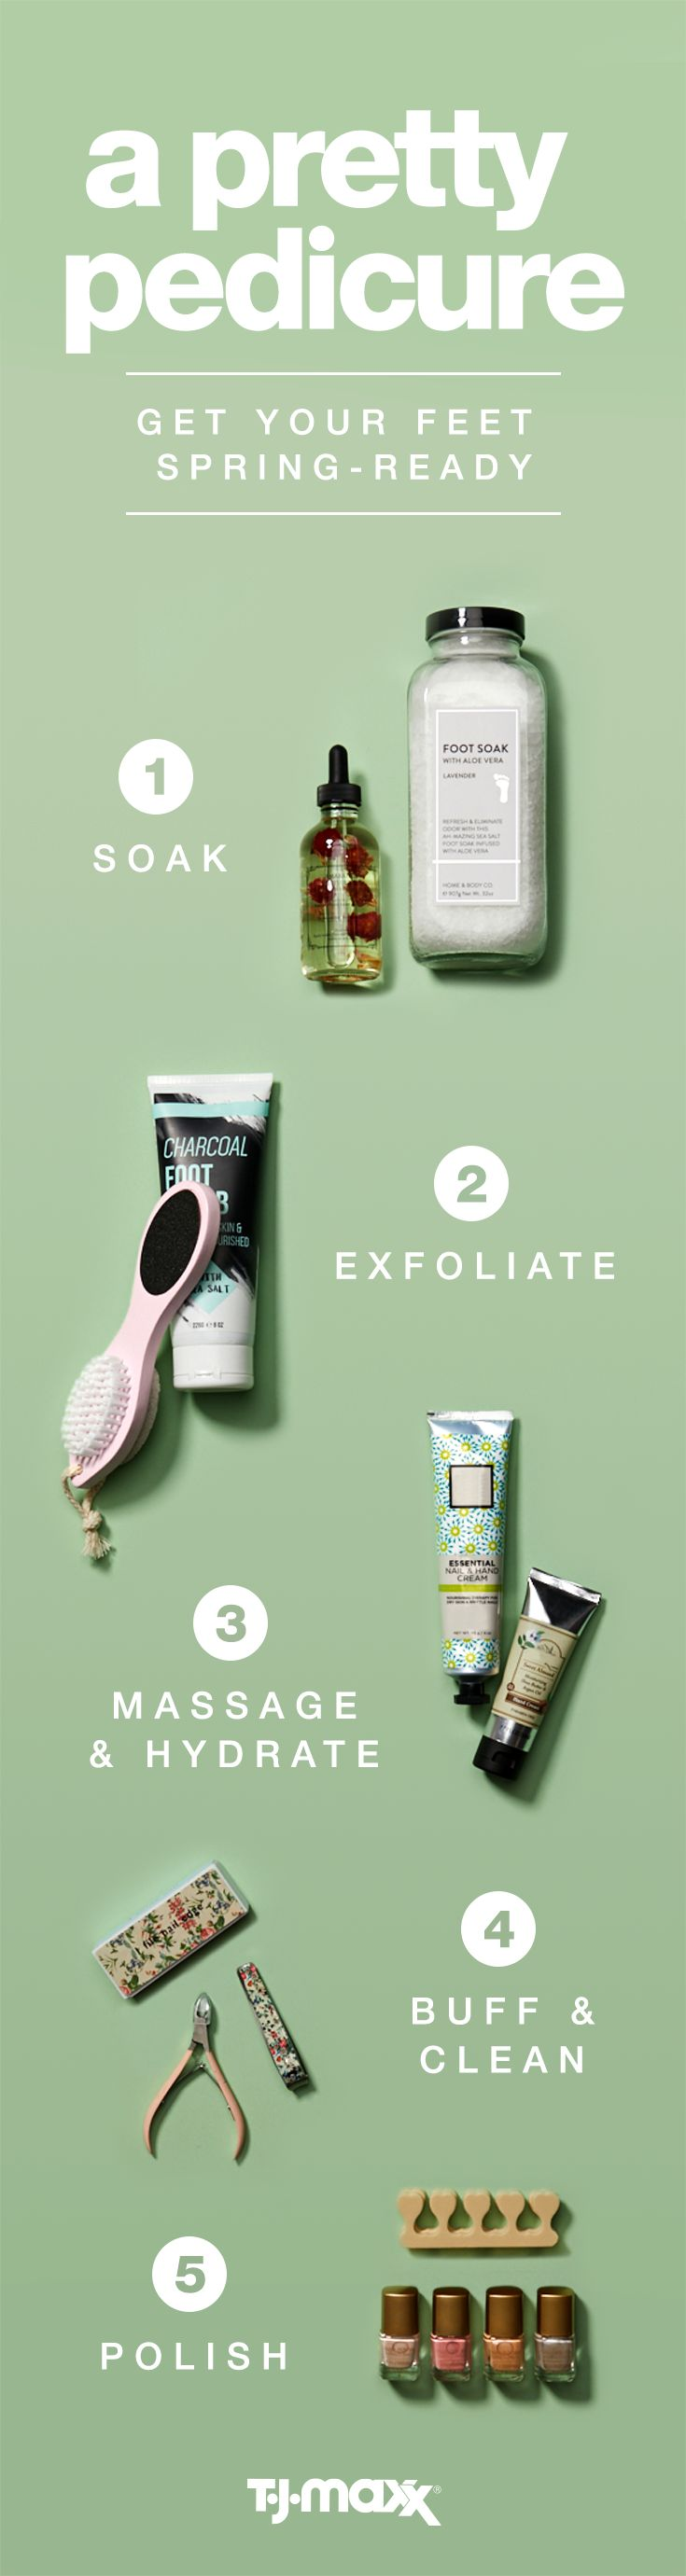 """Treat yourself to a DIY spring pedicure with all of the essentials. Relax with rejuvenating moisturizers or scrubs and top off your """"me time"""" with spring-ready polish in a fun hue. It's the ultimate pre-spring spa day, without having to leave your living room. Shop your local T.J.Maxx or tjmaxx.com for more spa must-haves."""